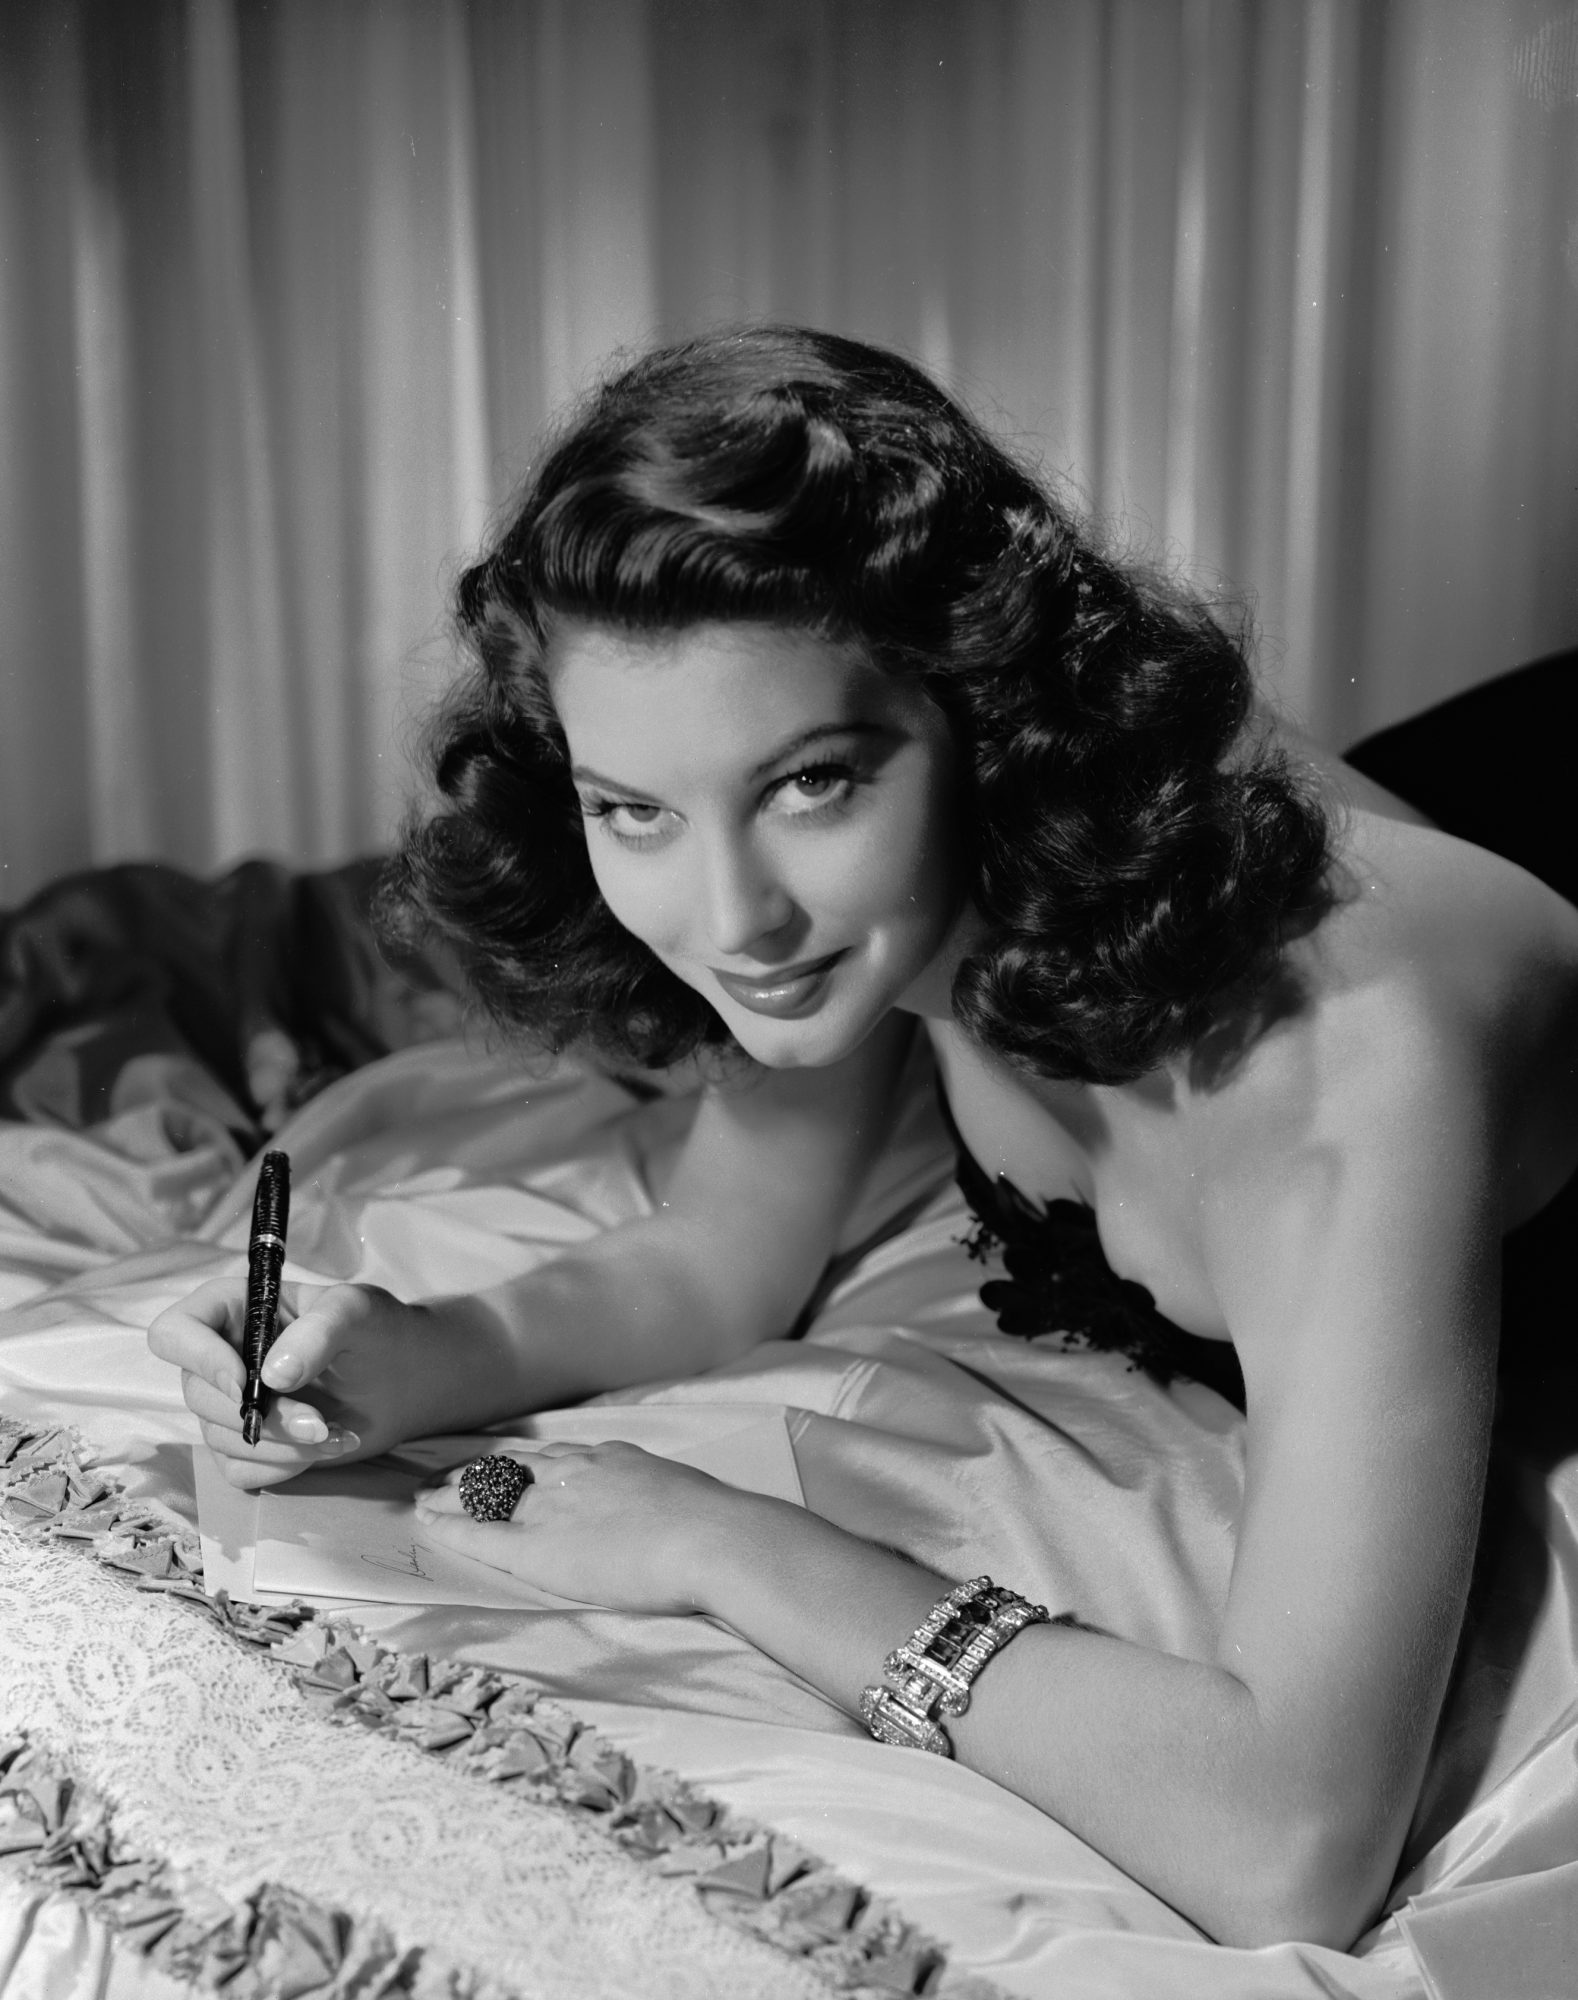 Ava Gardner Writing Letter